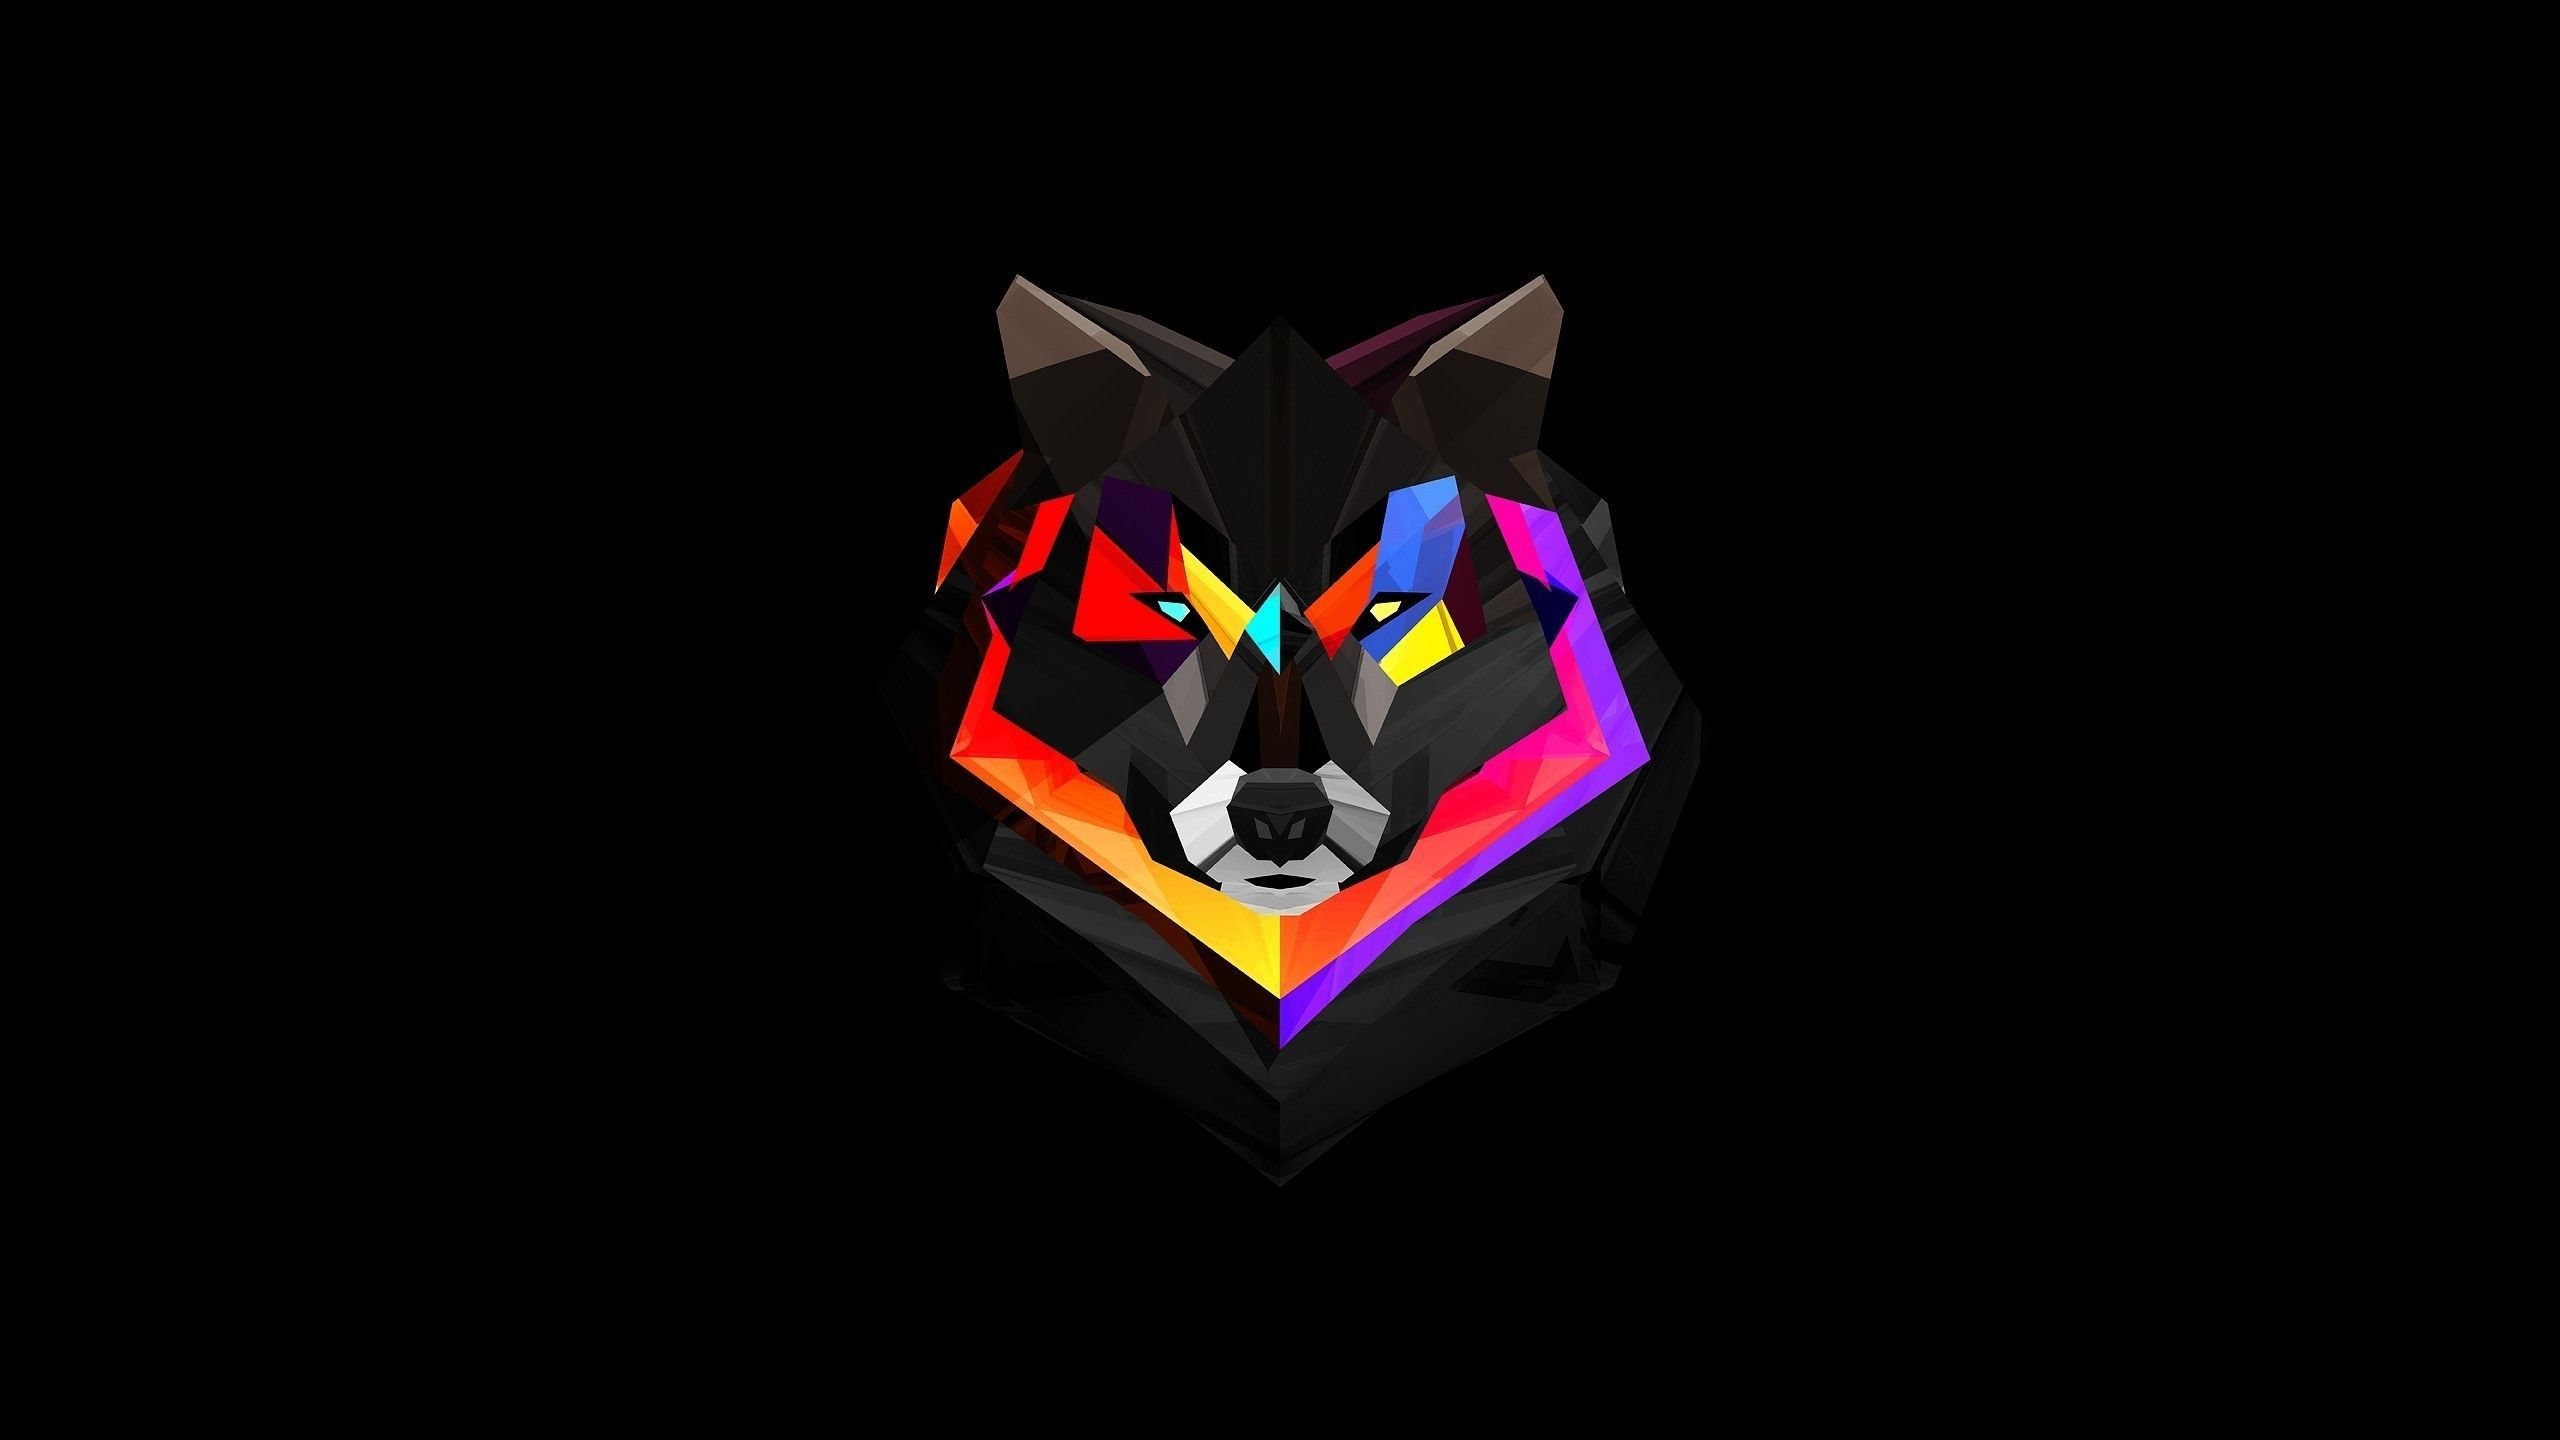 Wallpapers Hd Geometric Wolf Wallpaper Wolf Wallpaper Geometric Animal Wallpaper